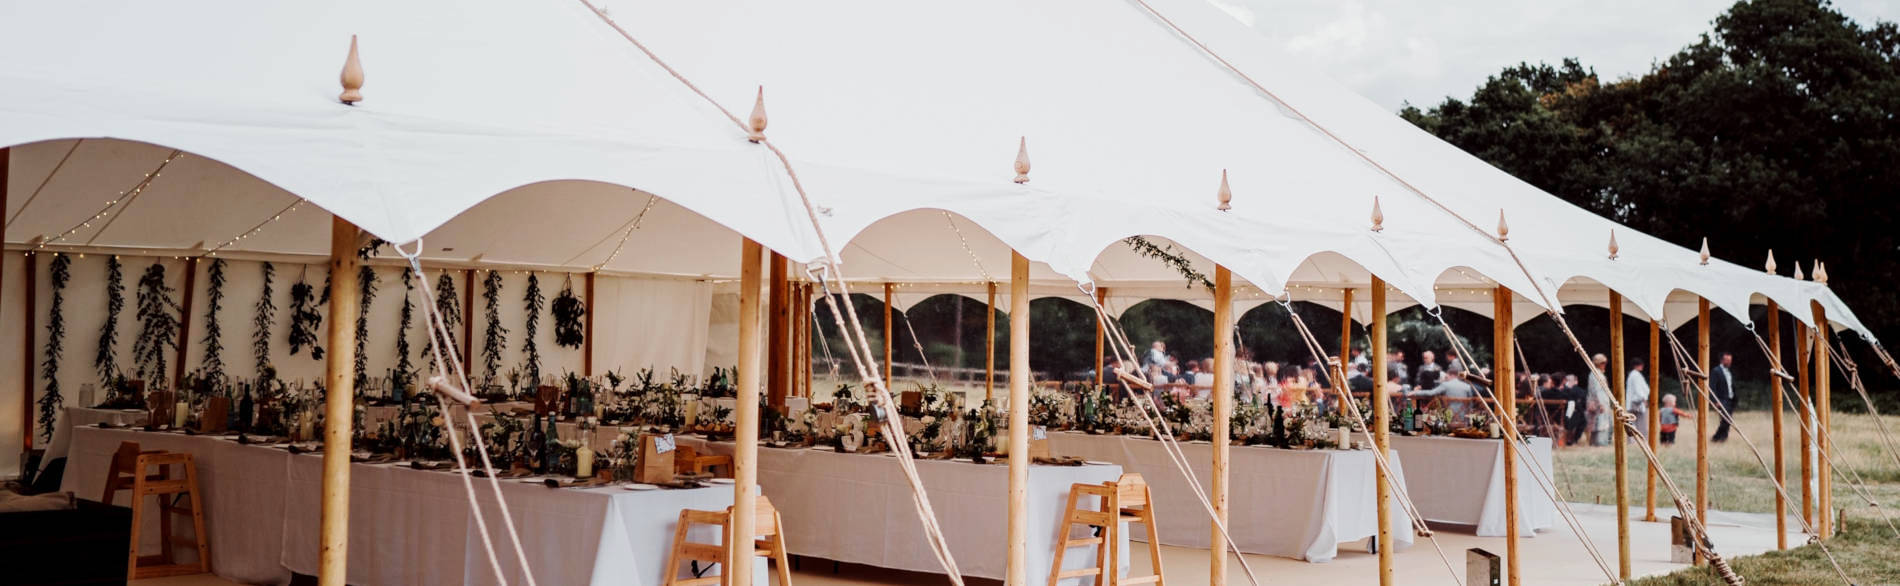 Wedding marquee furniture